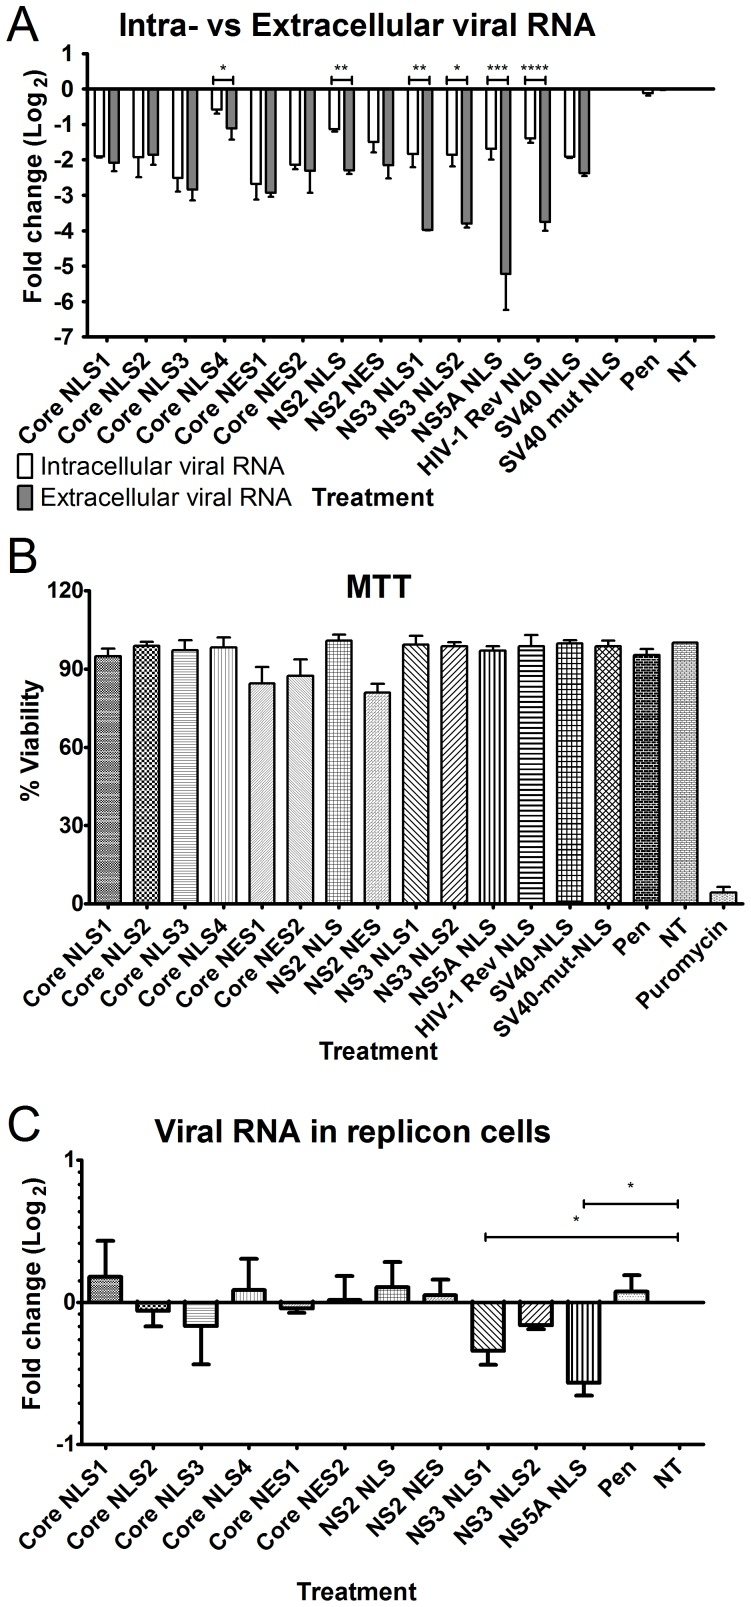 Effect of different nuclear transport signals bearing peptides on HCV infection. Cells were infected by HCV and treated with the indicated peptides. (A) Following 4 days of infection, virus titer was estimated by monitoring the levels of intracellular and extracellular viral RNA, using real time PCR. Significant differences between the intracellular and extracellular viral RNA levels are indicated by: * p